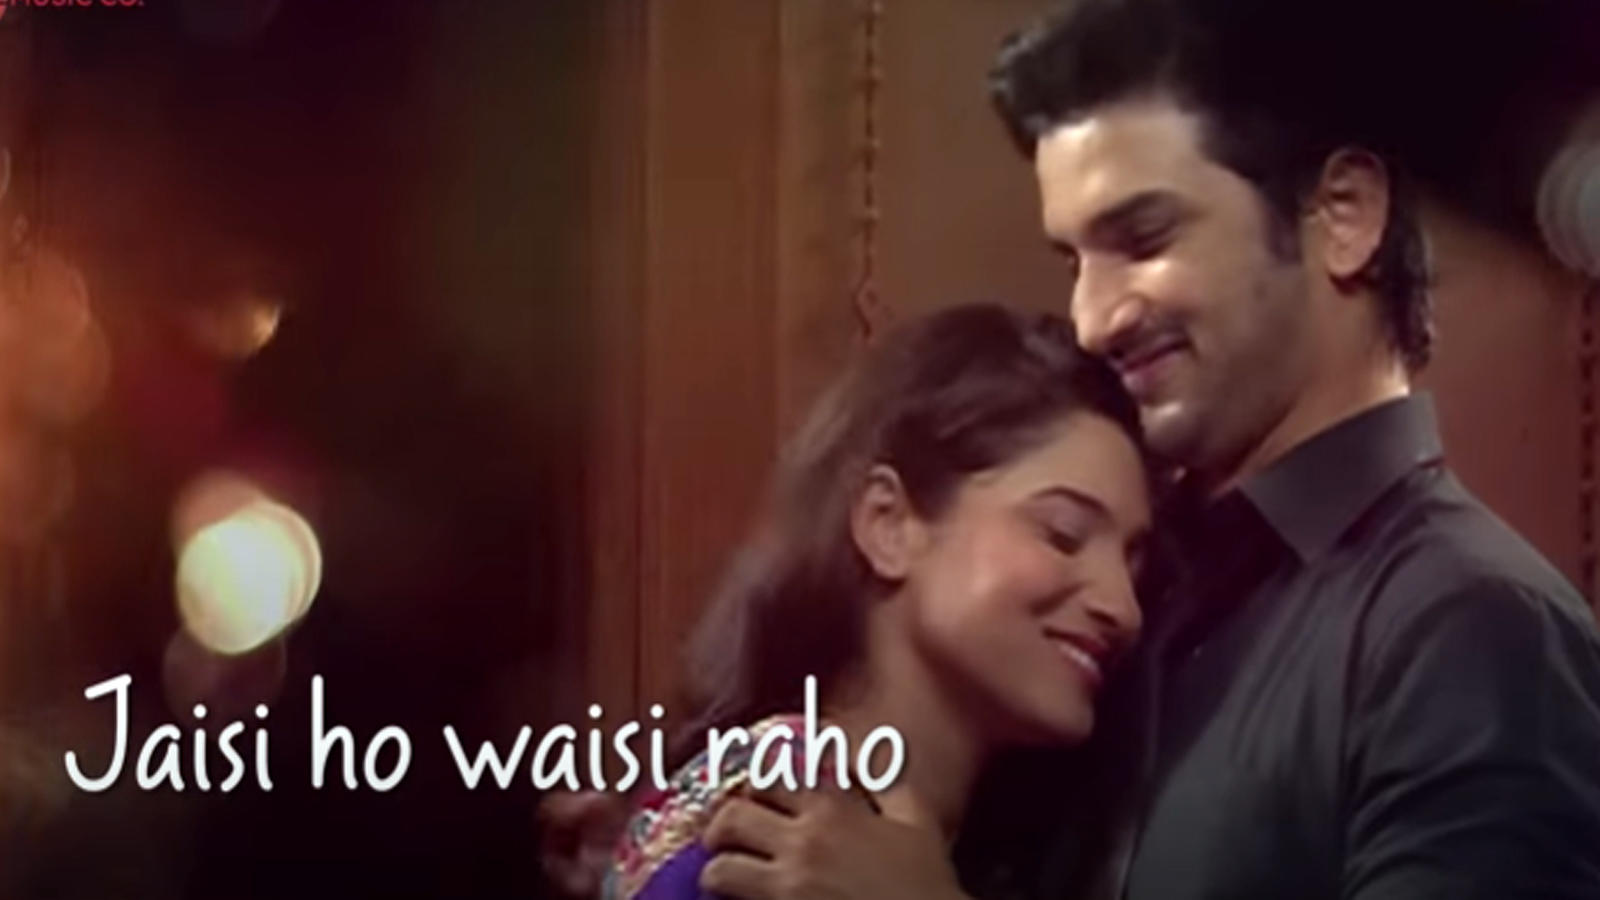 this-romantic-song-featuring-sushant-singh-rajput-and-ankita-lokhande-titled-jaisi-ho-waisi-raho-never-got-released